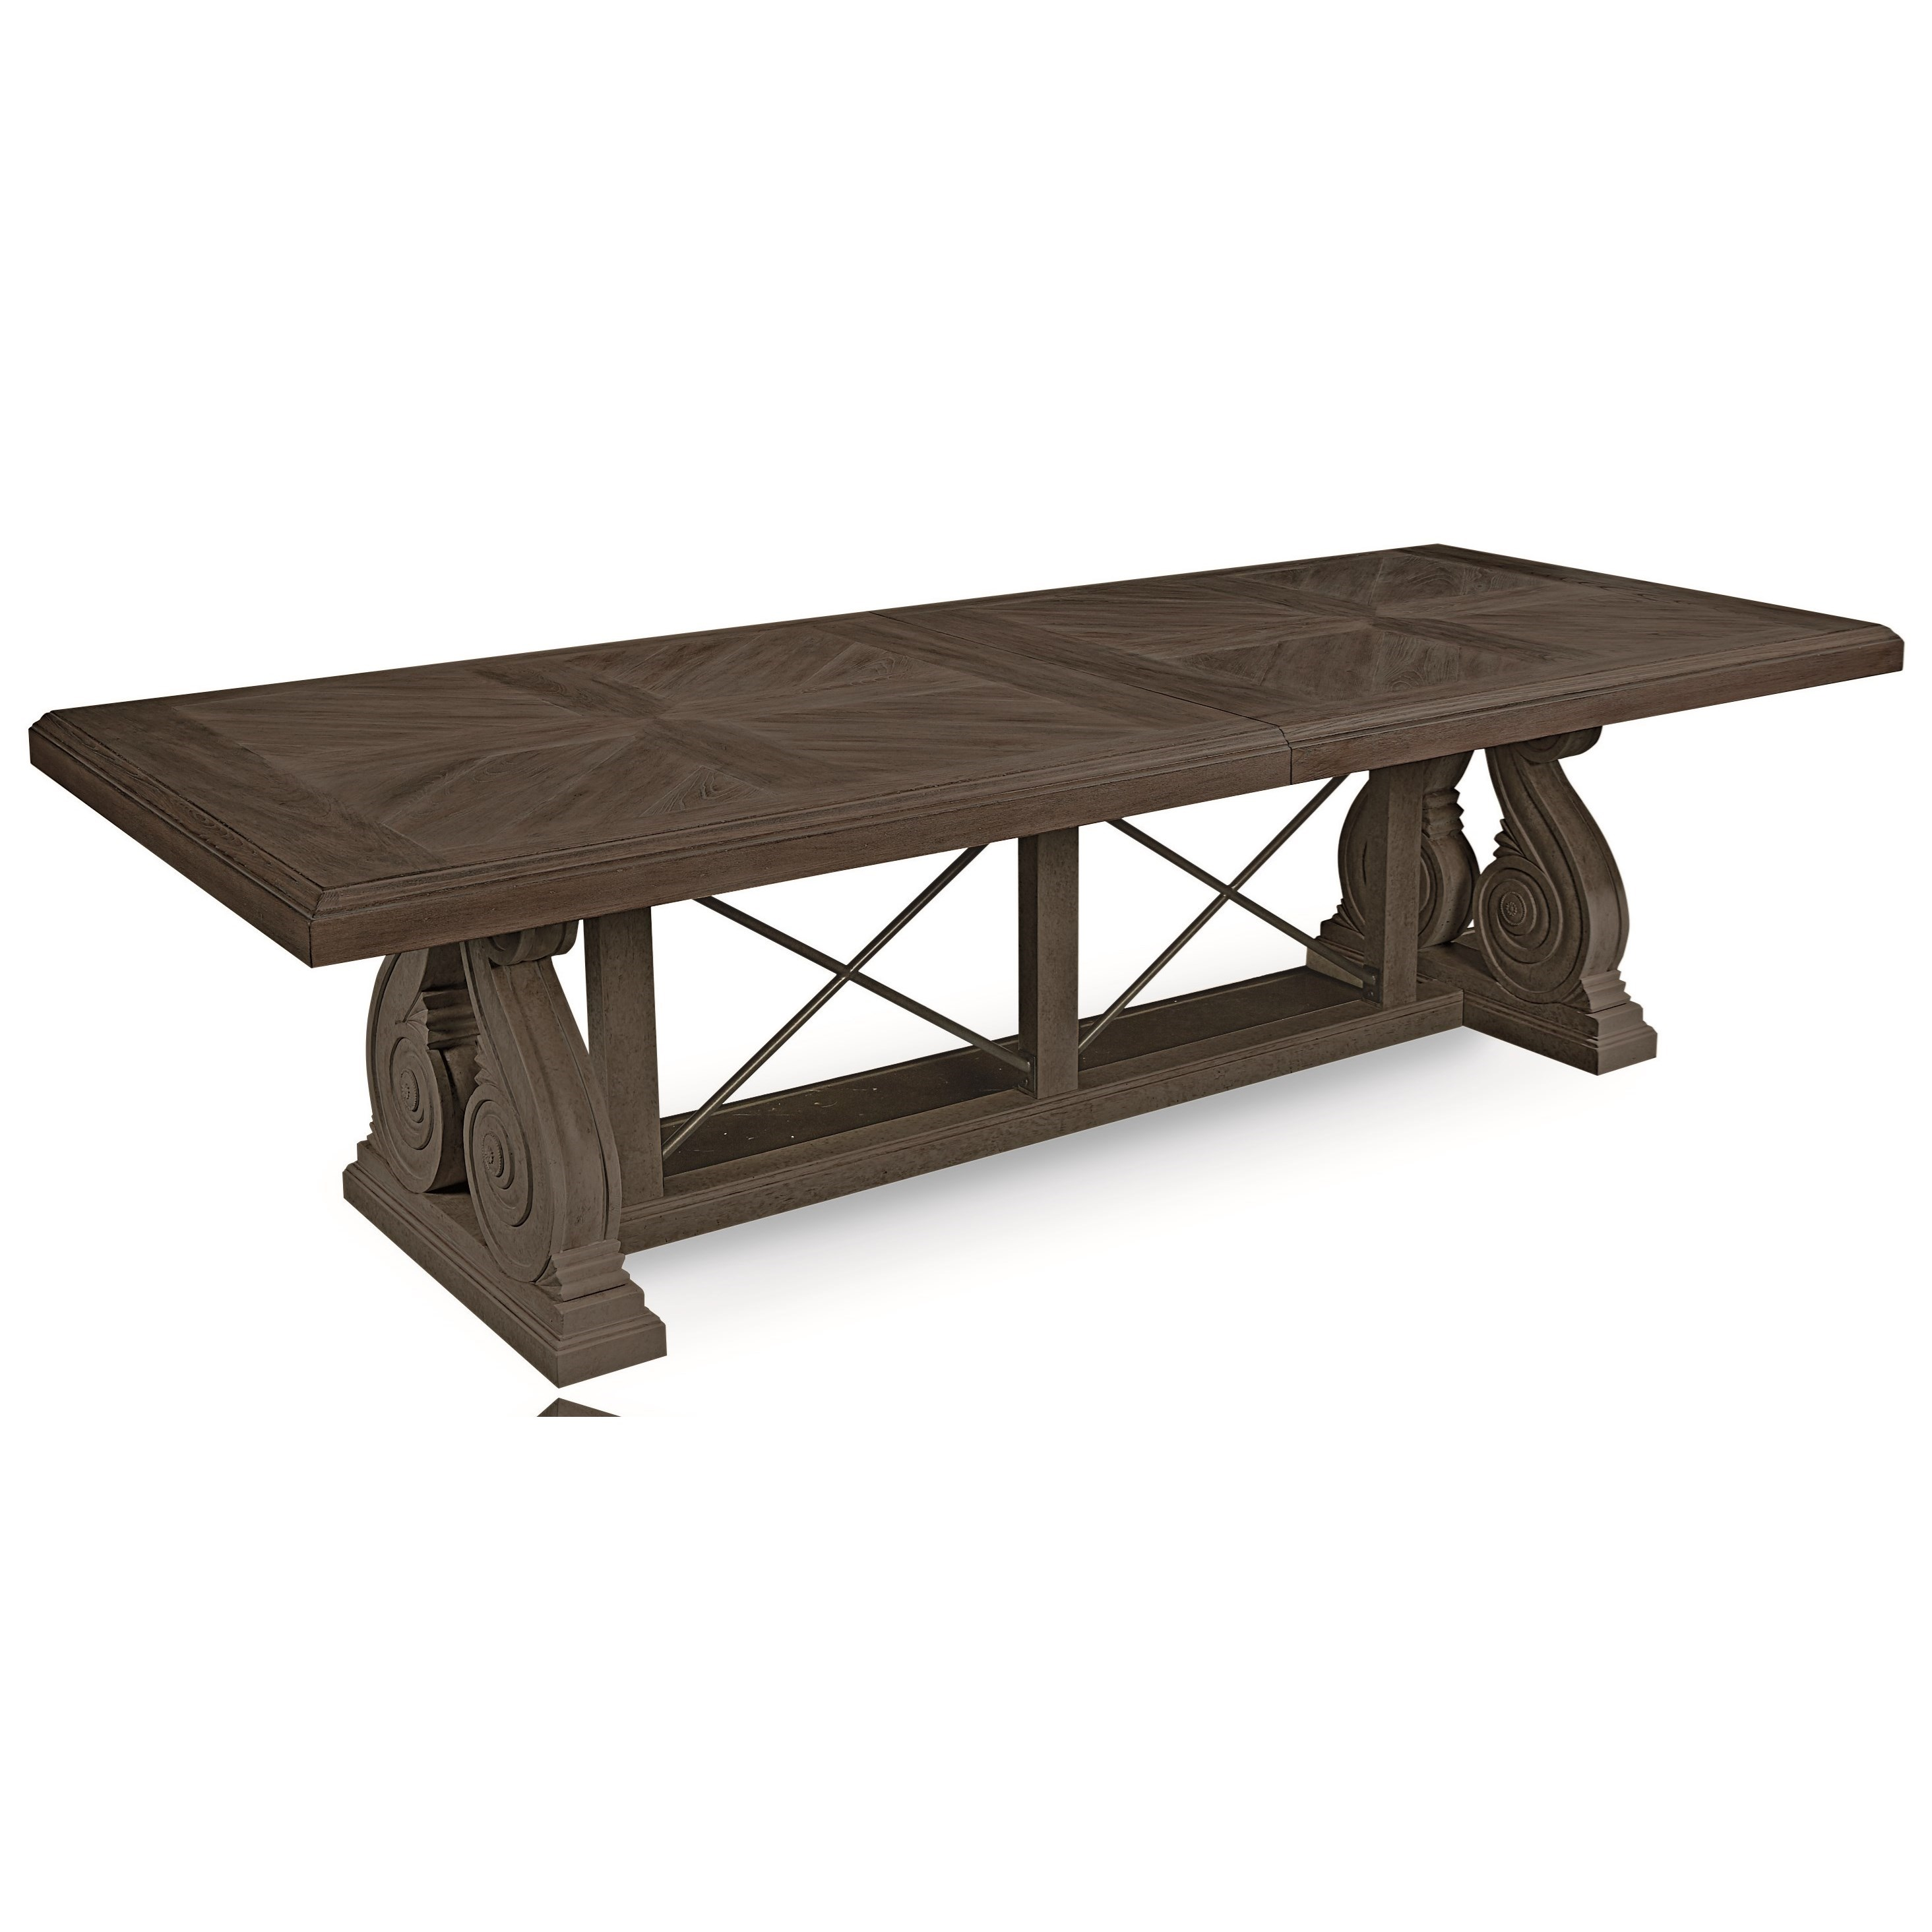 Vintage Salvage  Pearce Dining Table by A.R.T. Furniture Inc at Home Collections Furniture